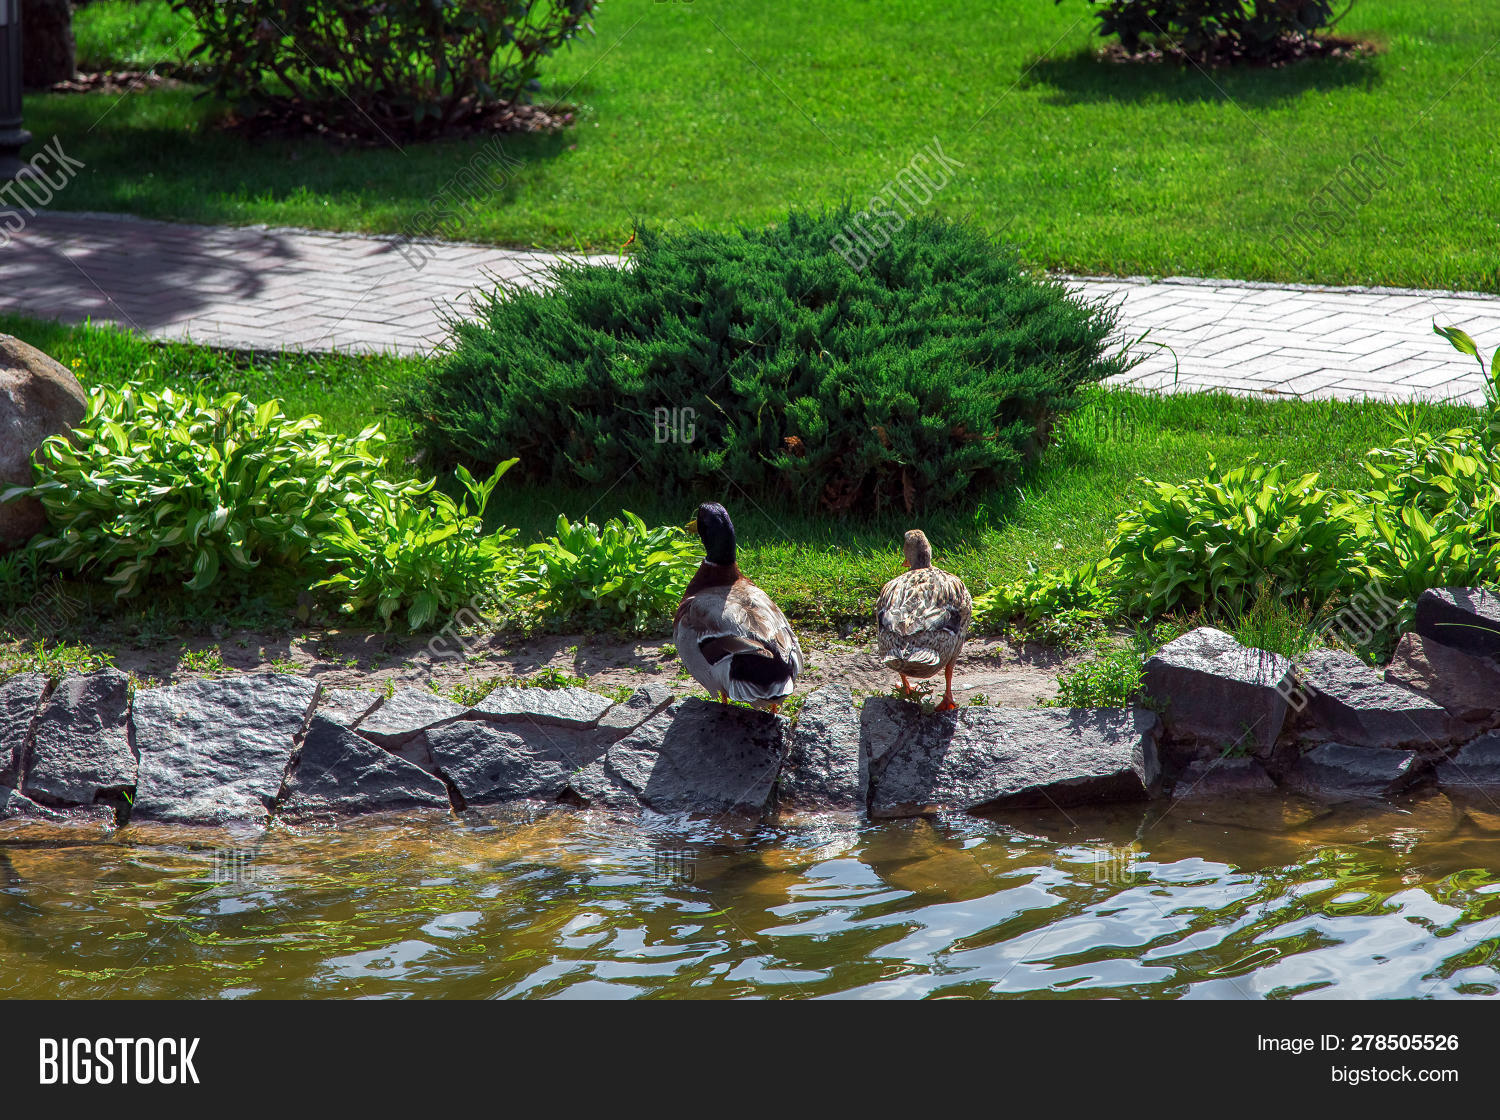 Ducks Sit On A Decorative Stone On Land With Landscape